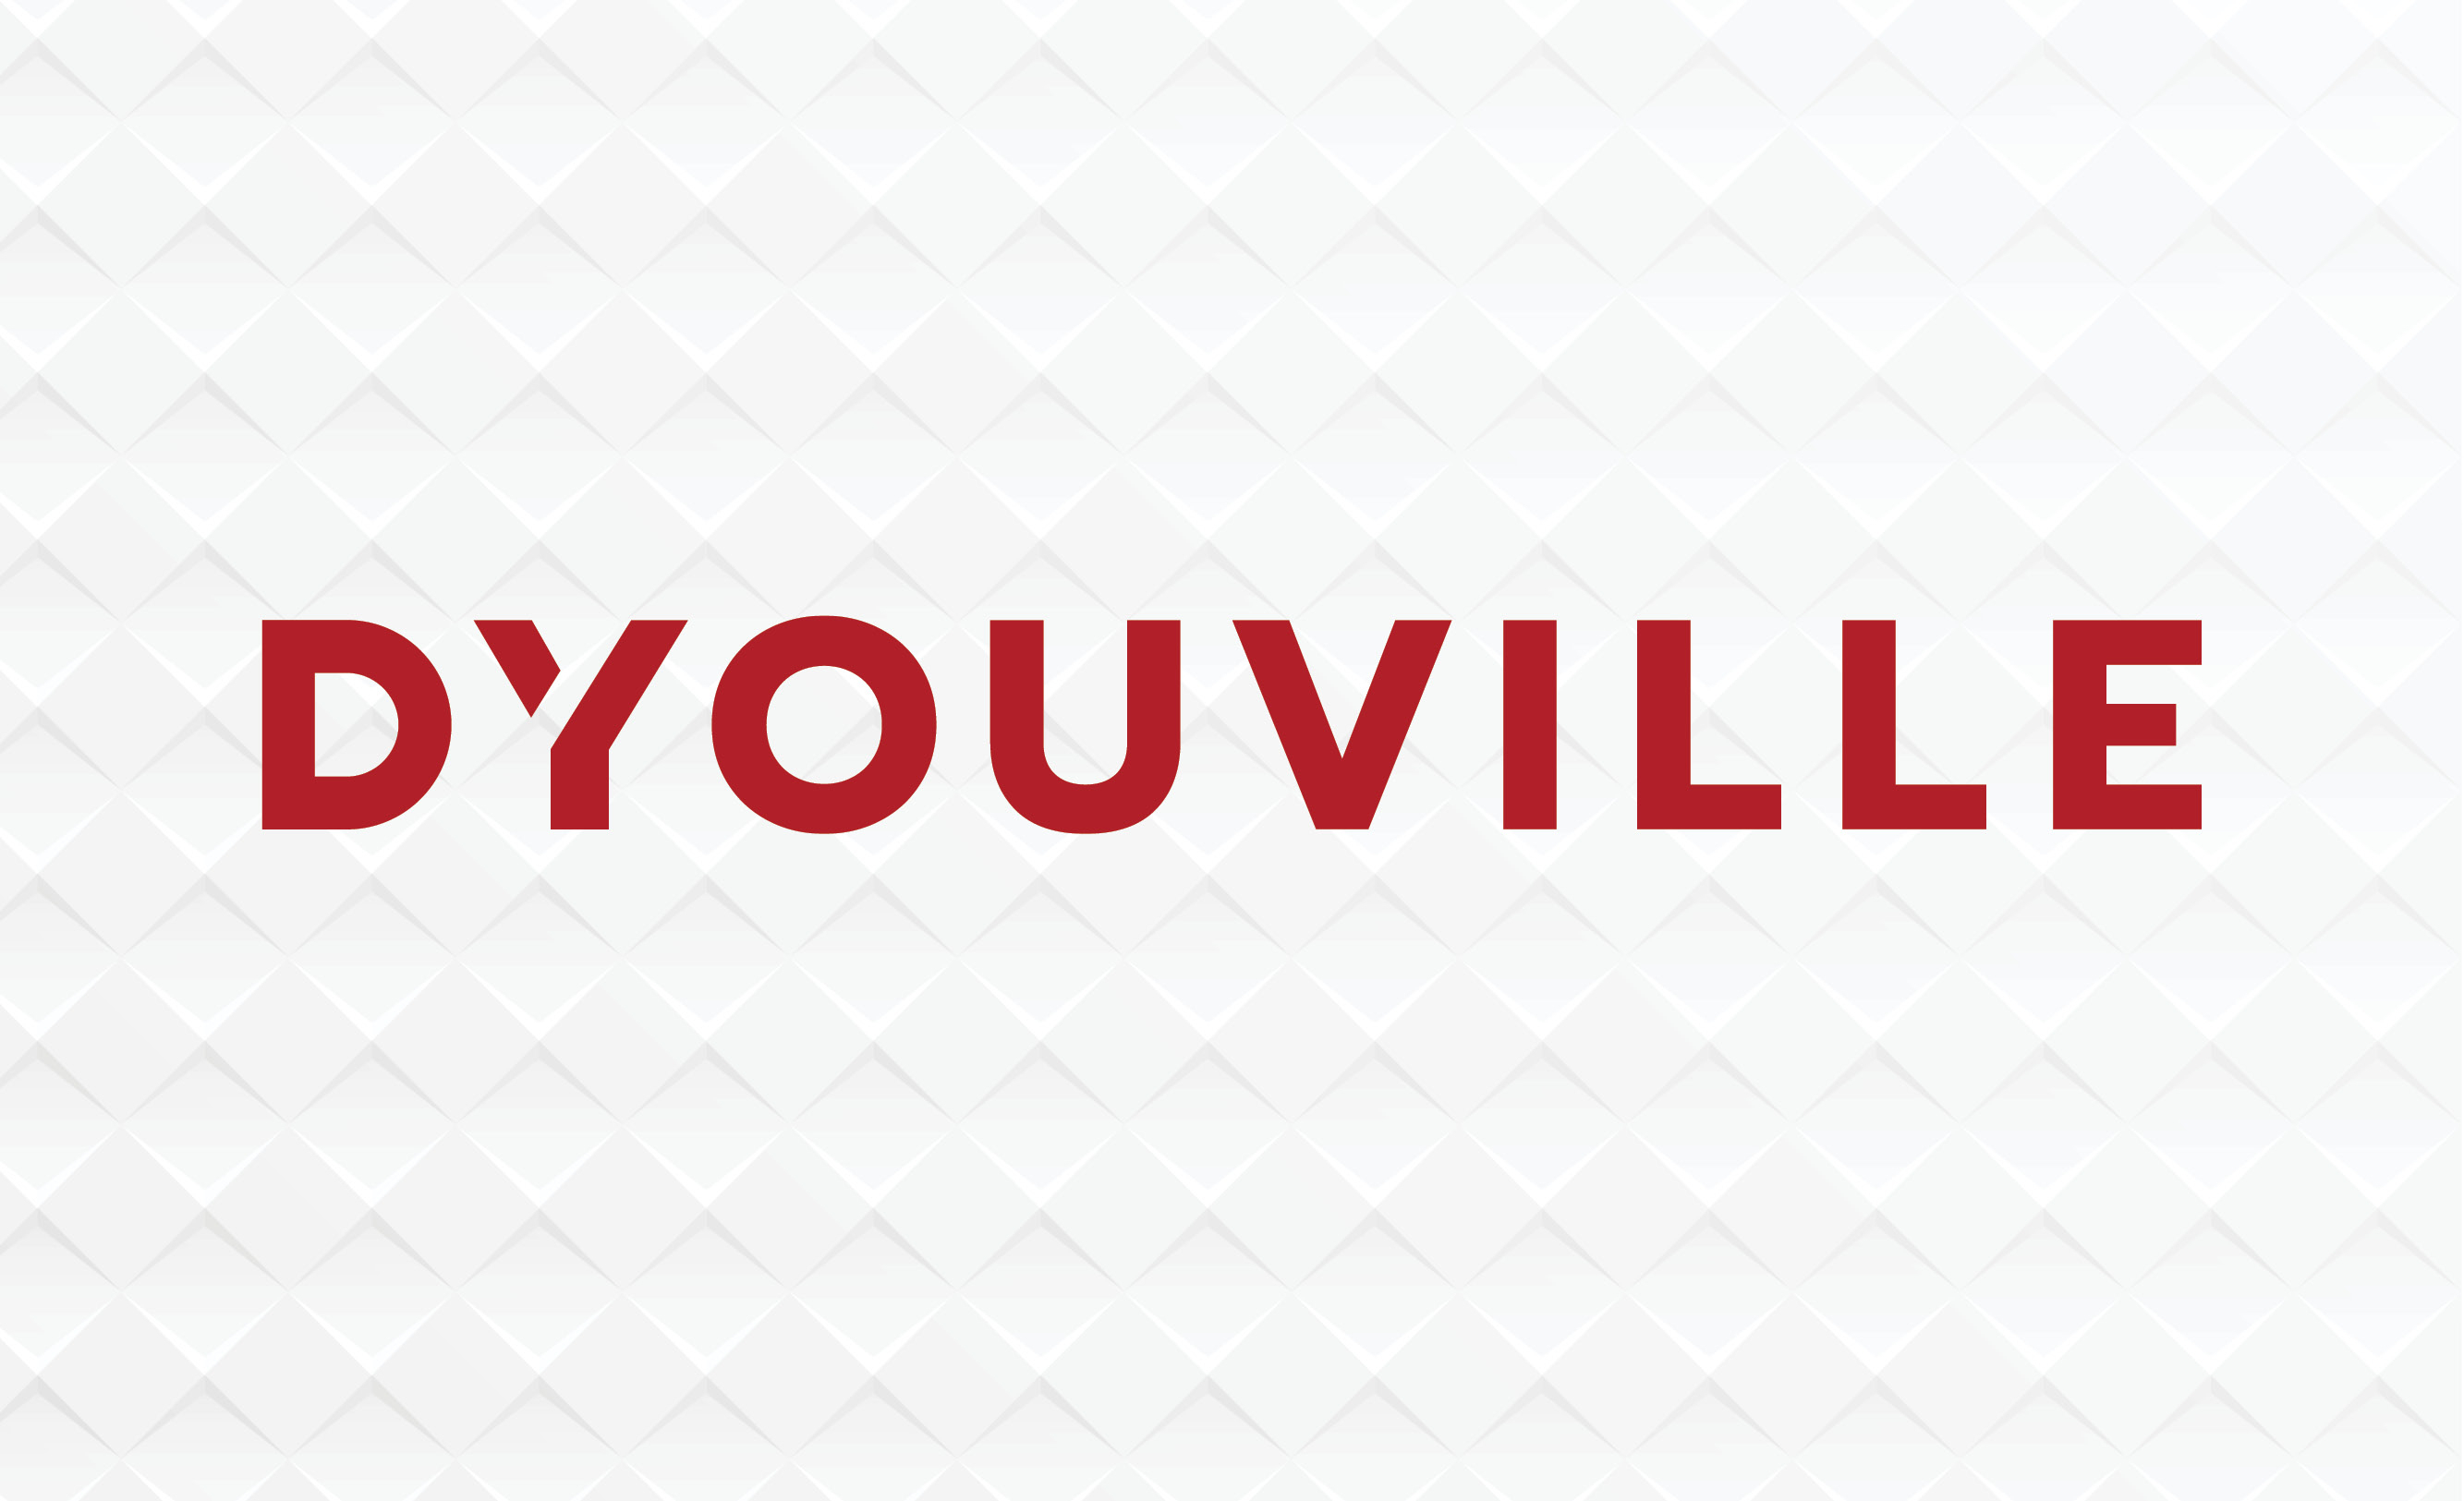 D'youville Launches New Brand | D'youville